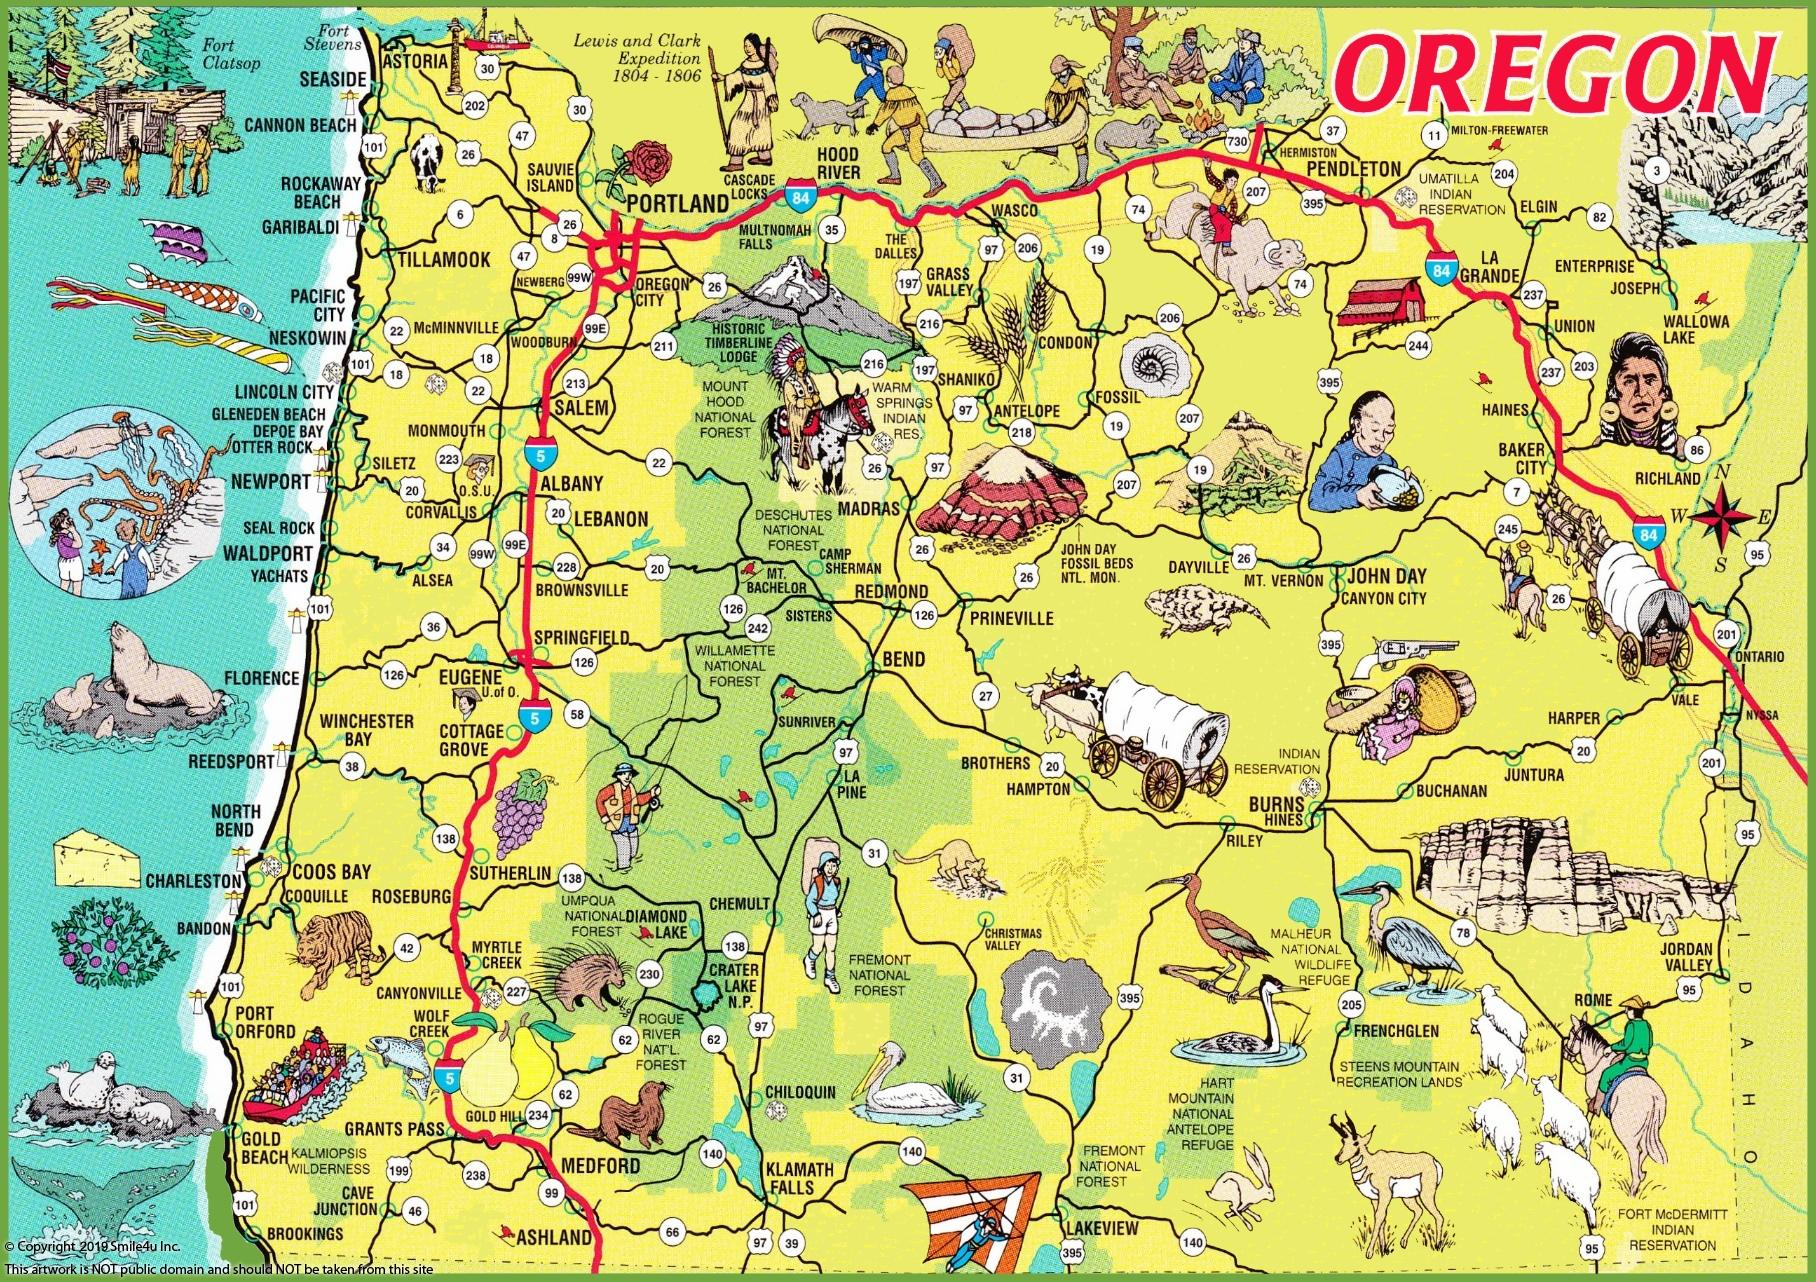 543114_watermarked_pictorial-travel-map-of-oregon.jpg